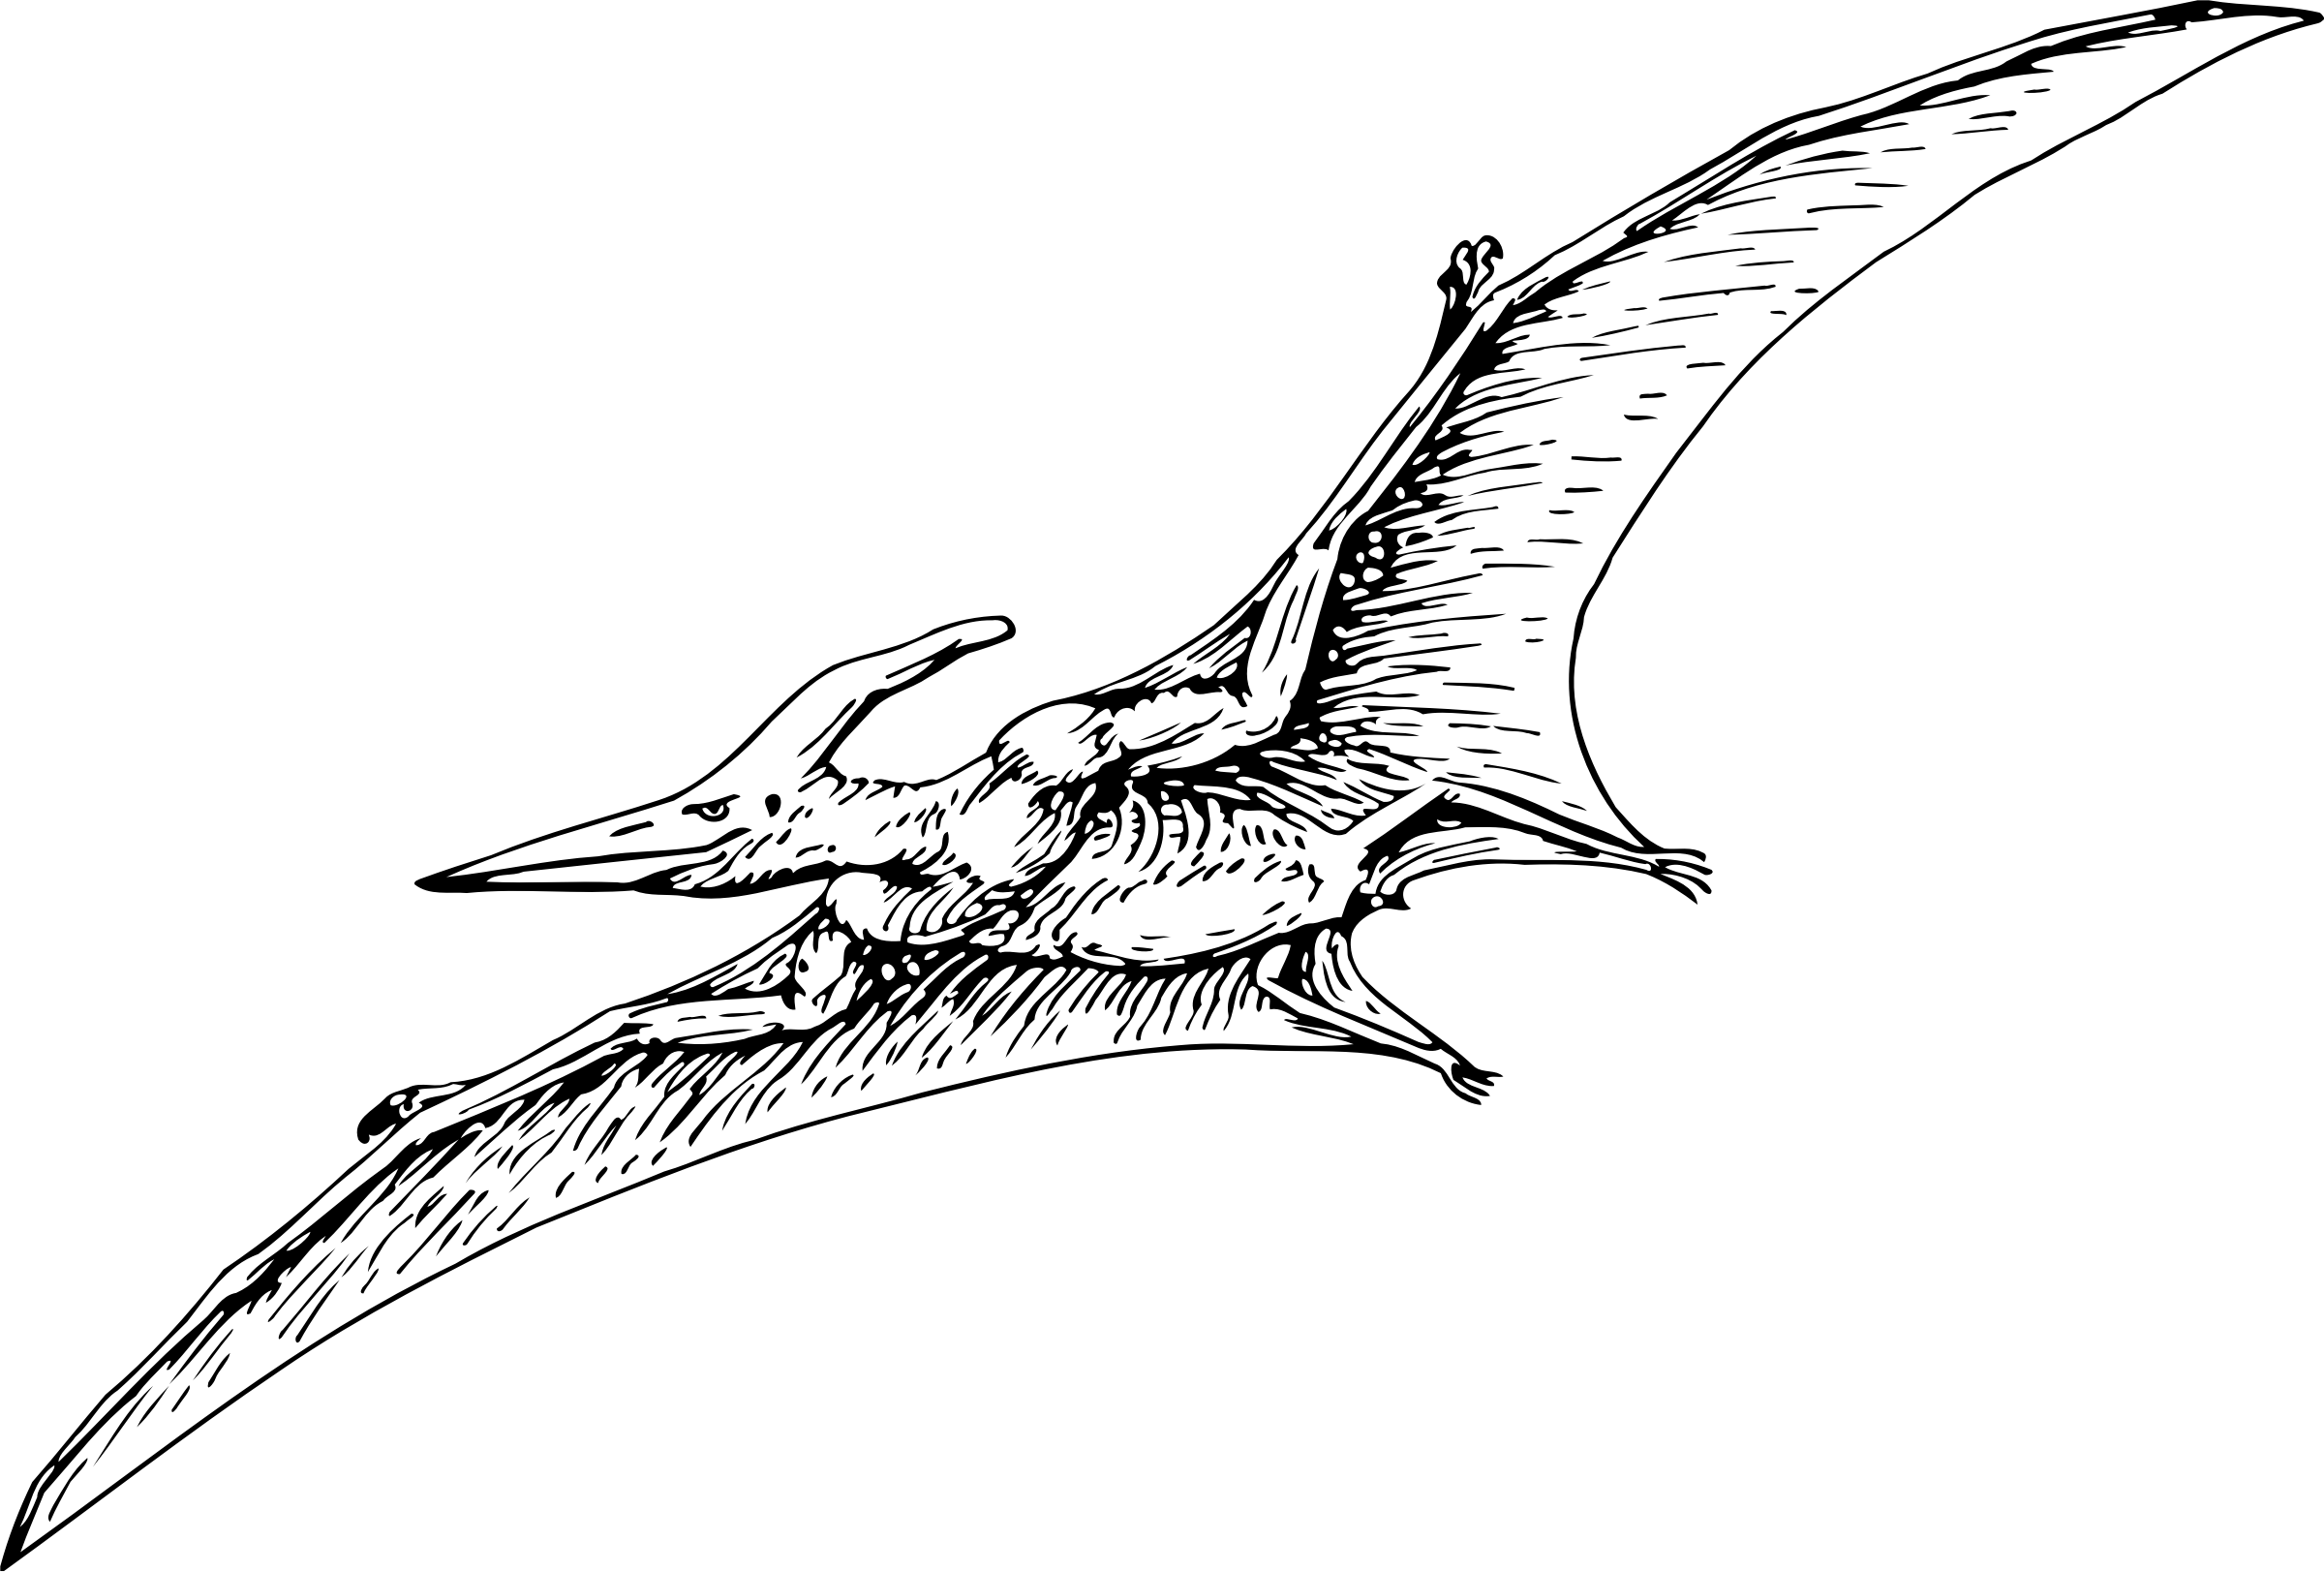 Pterodactyl Vector Drawing Image